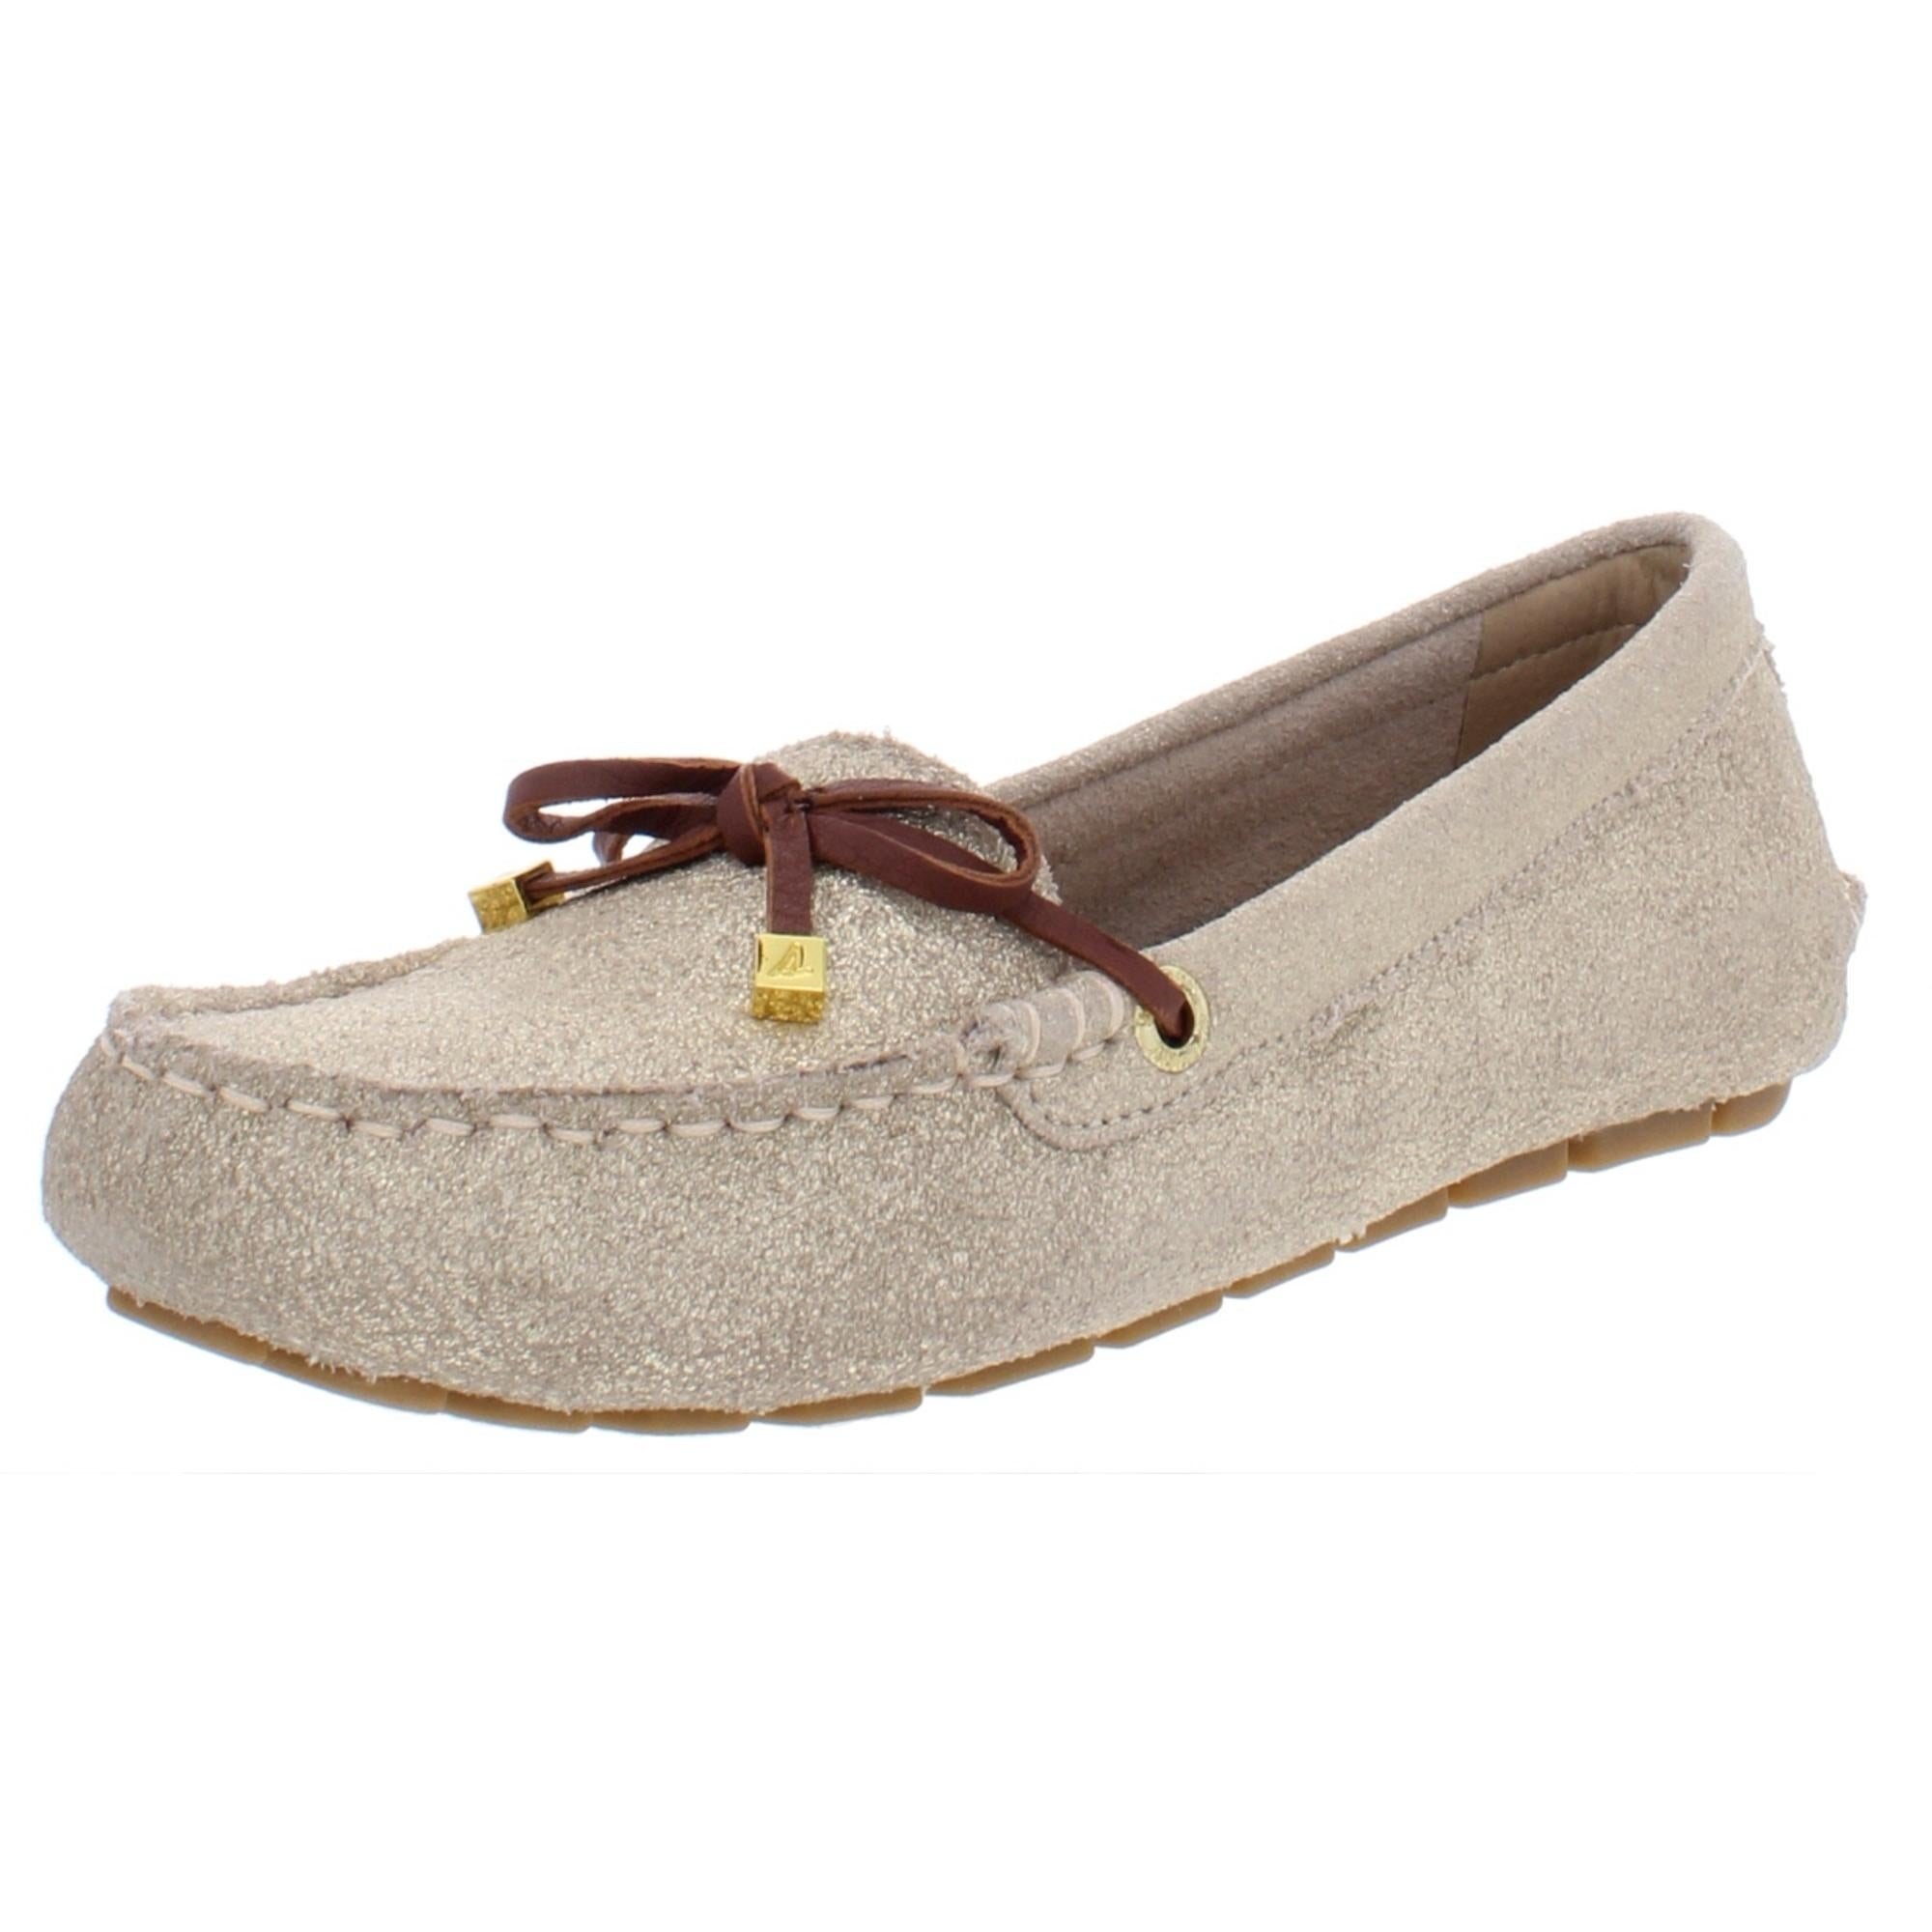 Sperry Womens Katharine Moccasins Suede